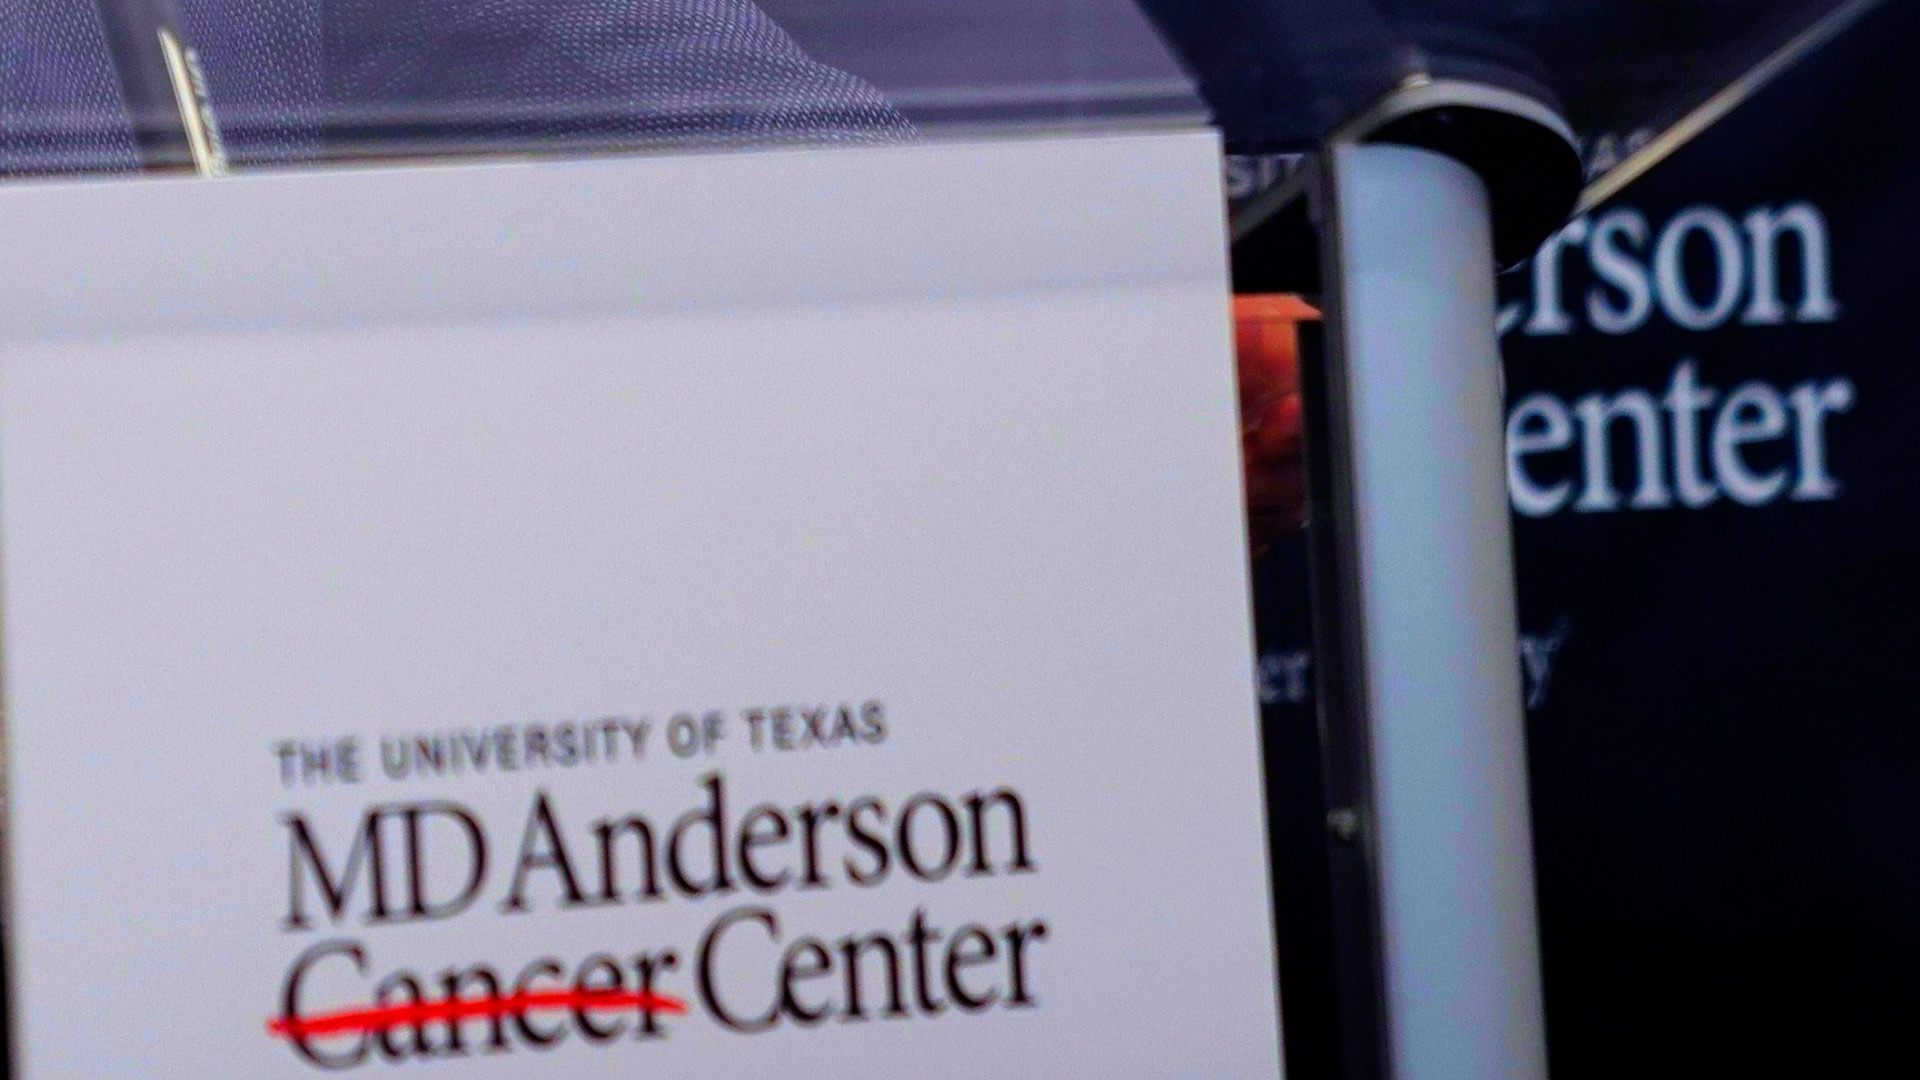 theepochtimes.com - lorenz duchamps - Texas Cancer Center Ousts 3 Over Chinese Data Theft Concerns